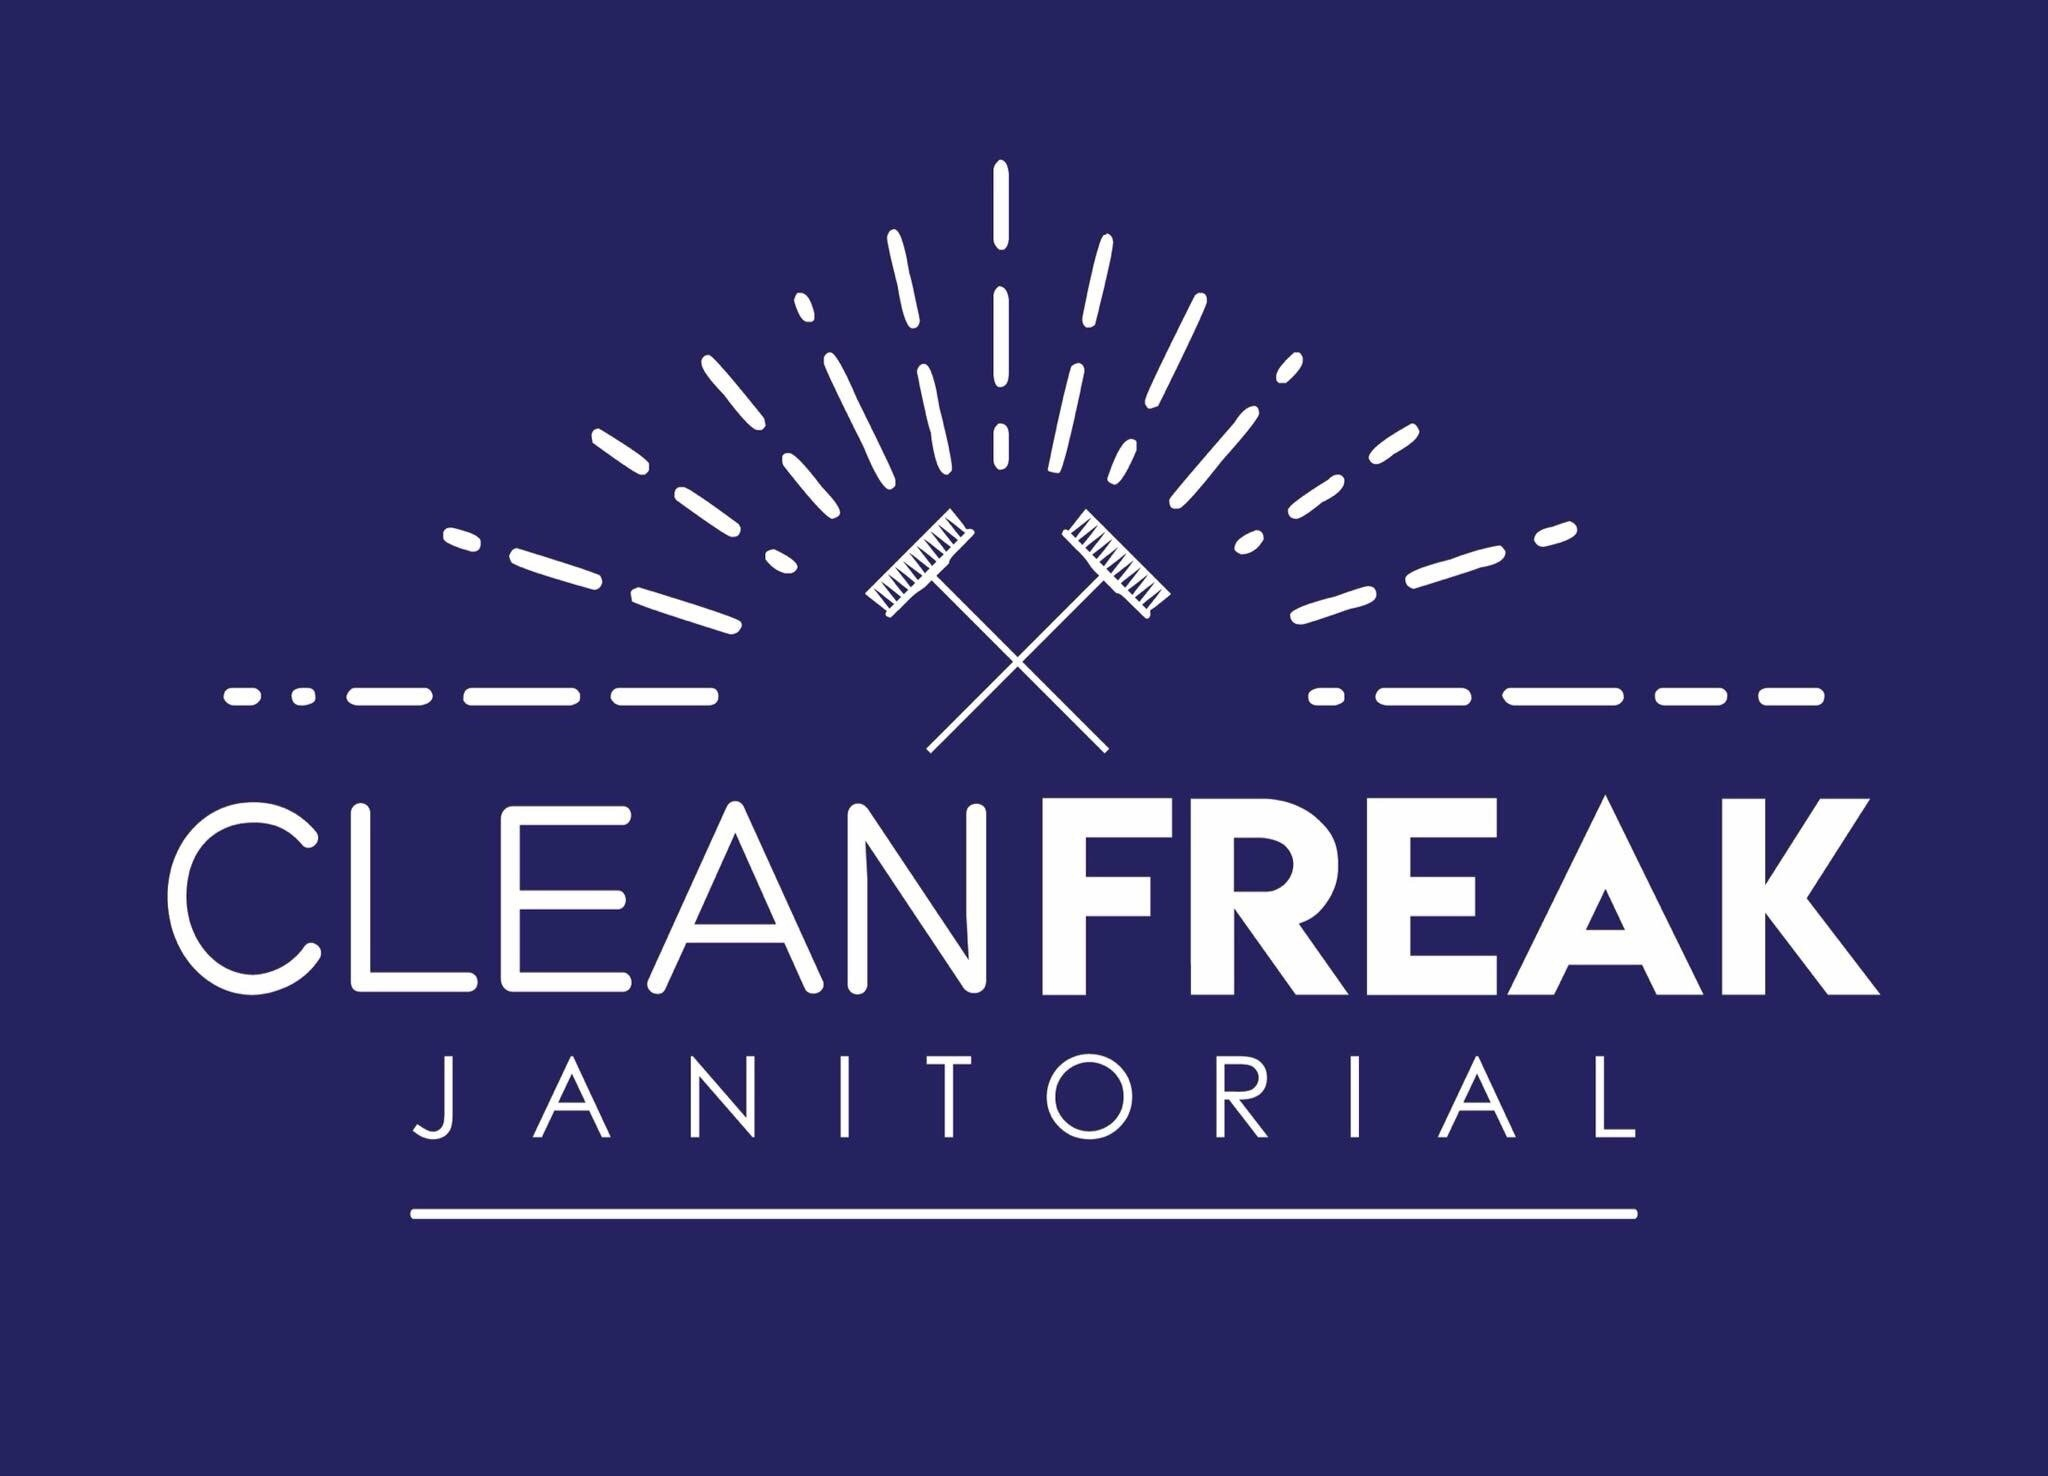 Clean Freak Janitorial